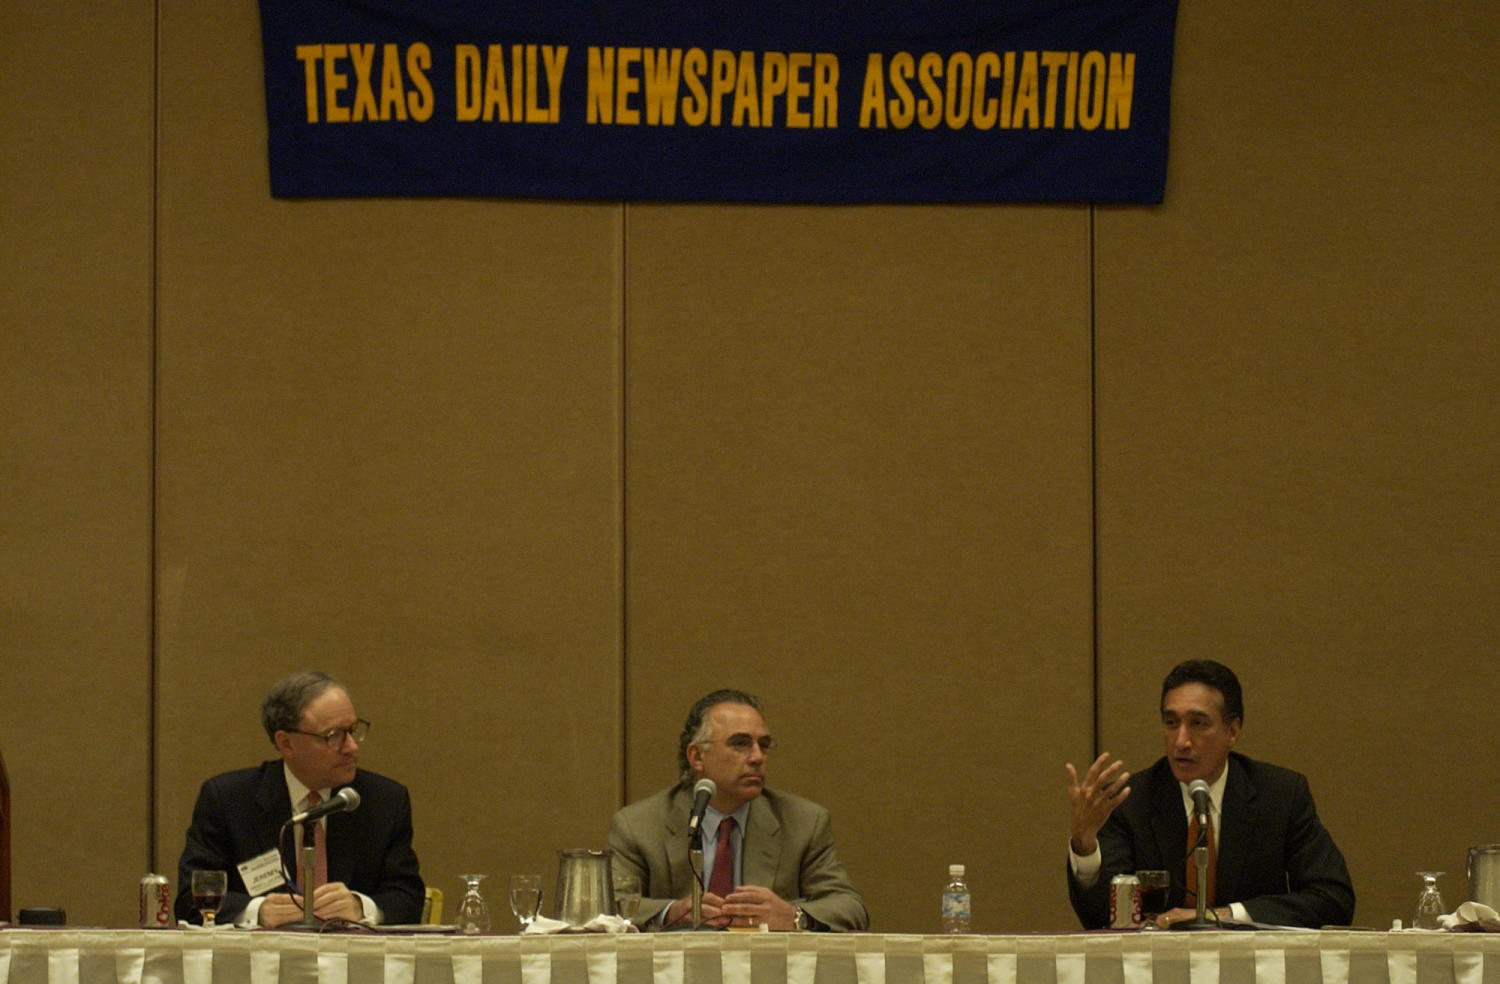 """[Guest speakers at TDNA conference], Photograph of Jeremy L. Halbreich (left) and two other unidentified guest speakers attending the 2004 Texas Daily News Association annual conference held in Corpus Christi. The guests speakers are seen sitting behind a table and speaking into their microphones and addressing the conference attendees. A banner above them reads """"Texas Daily Newspaper Association."""","""